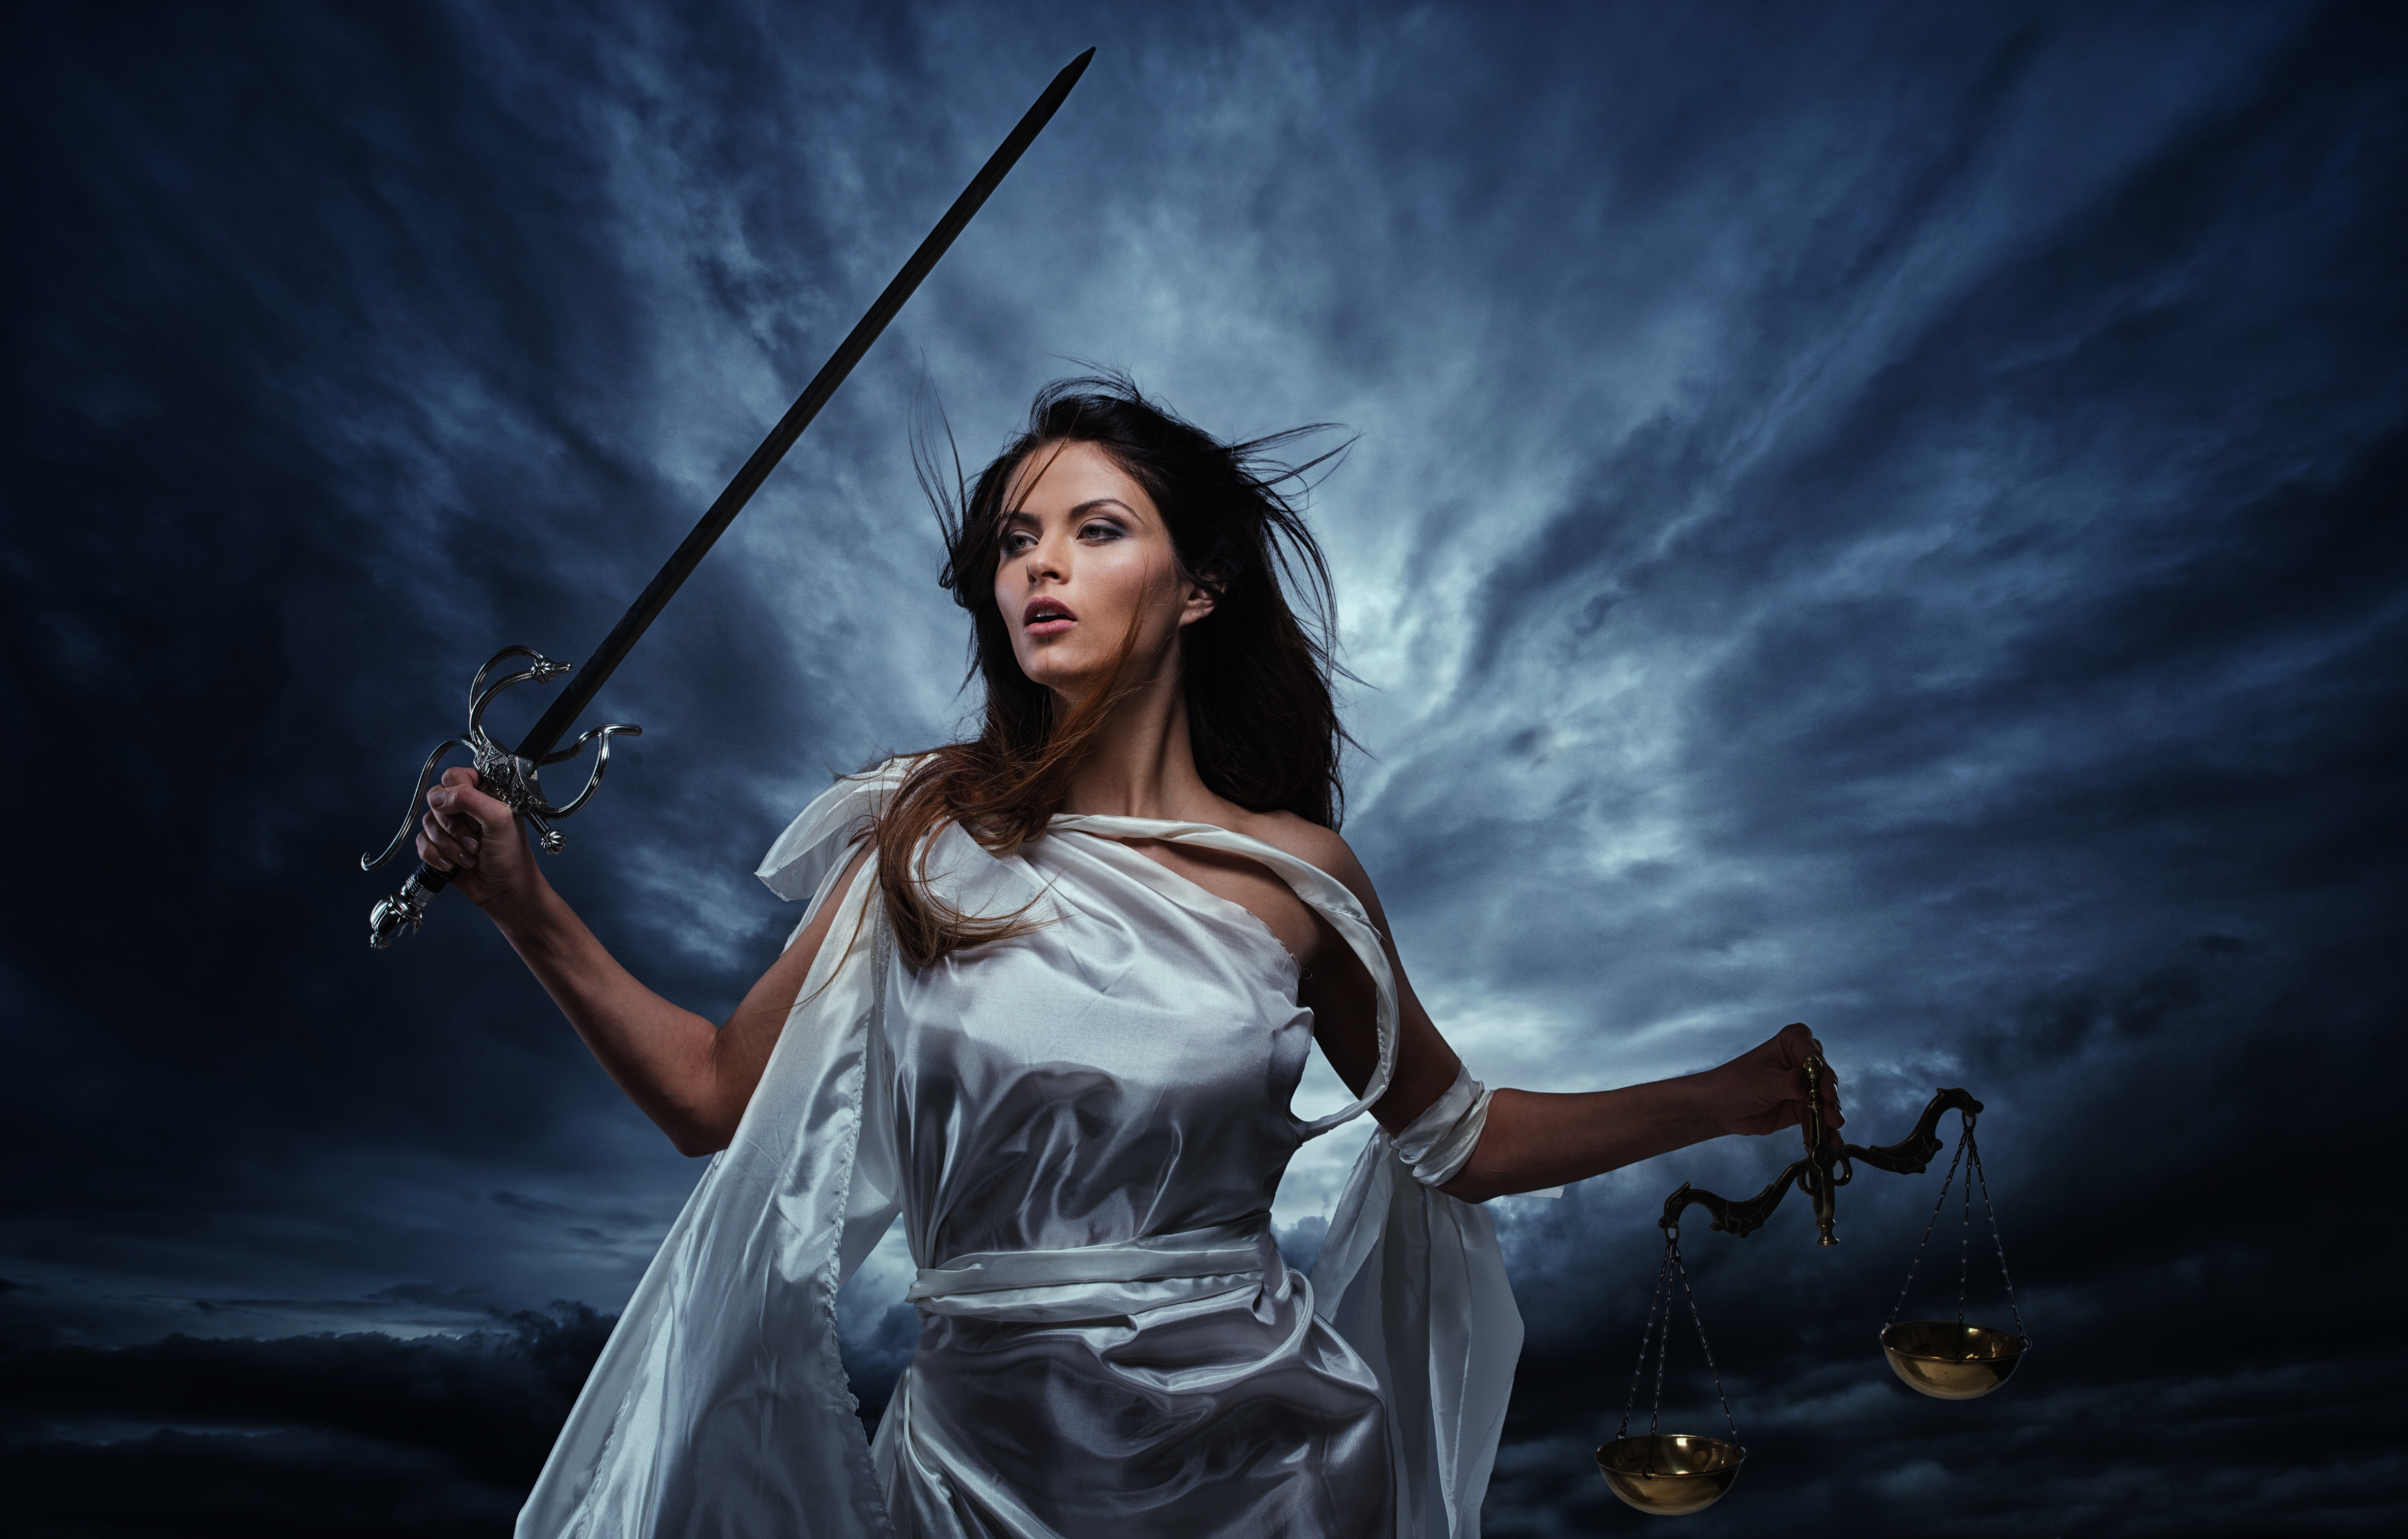 Fantasy girl with sword 8k hd photography 4k wallpapers - Girl with sword wallpaper ...